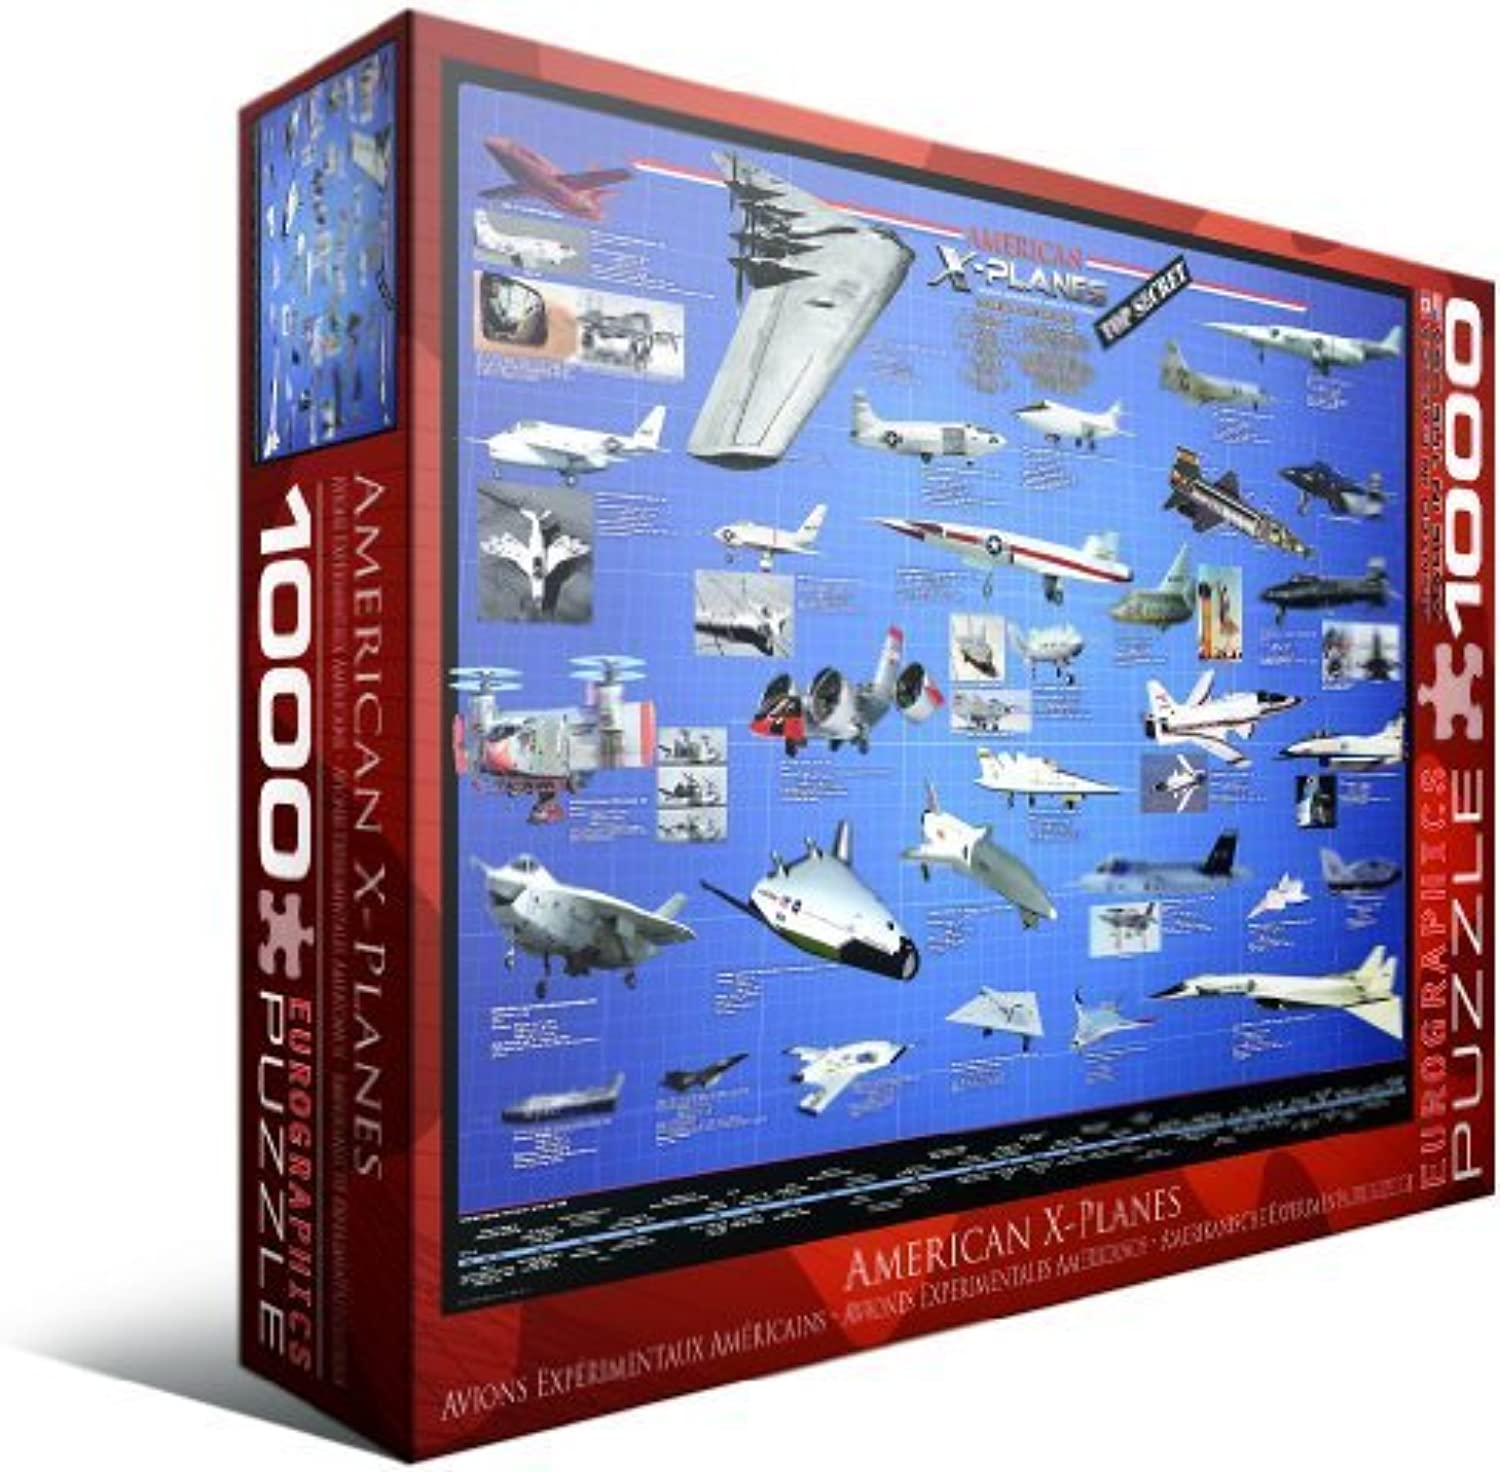 EuroGraphics American Aviation XPlanes 1000 Piece Jigsaw Puzzle by Eurographics